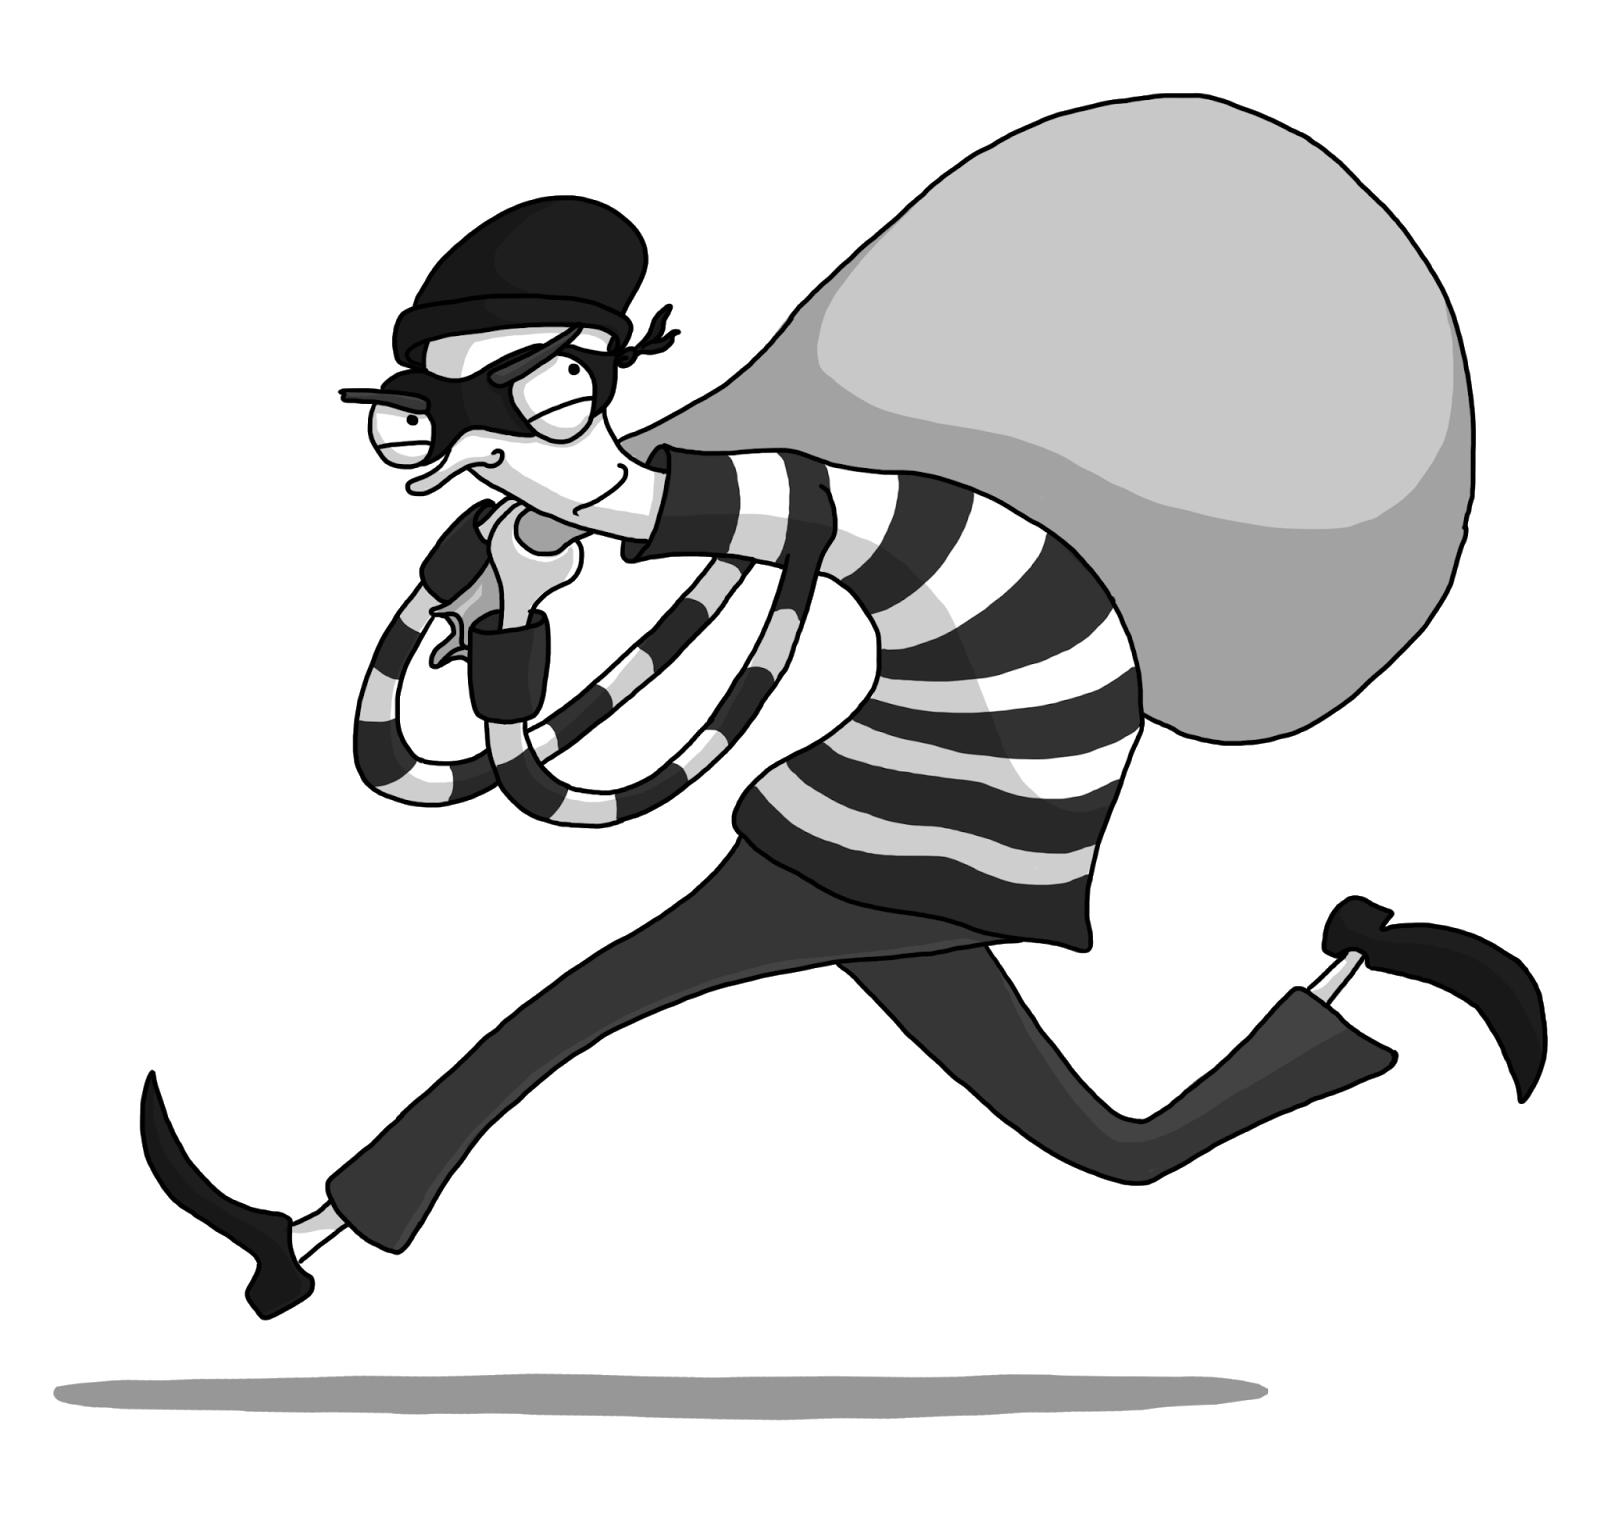 Robber PNG Photo Image.